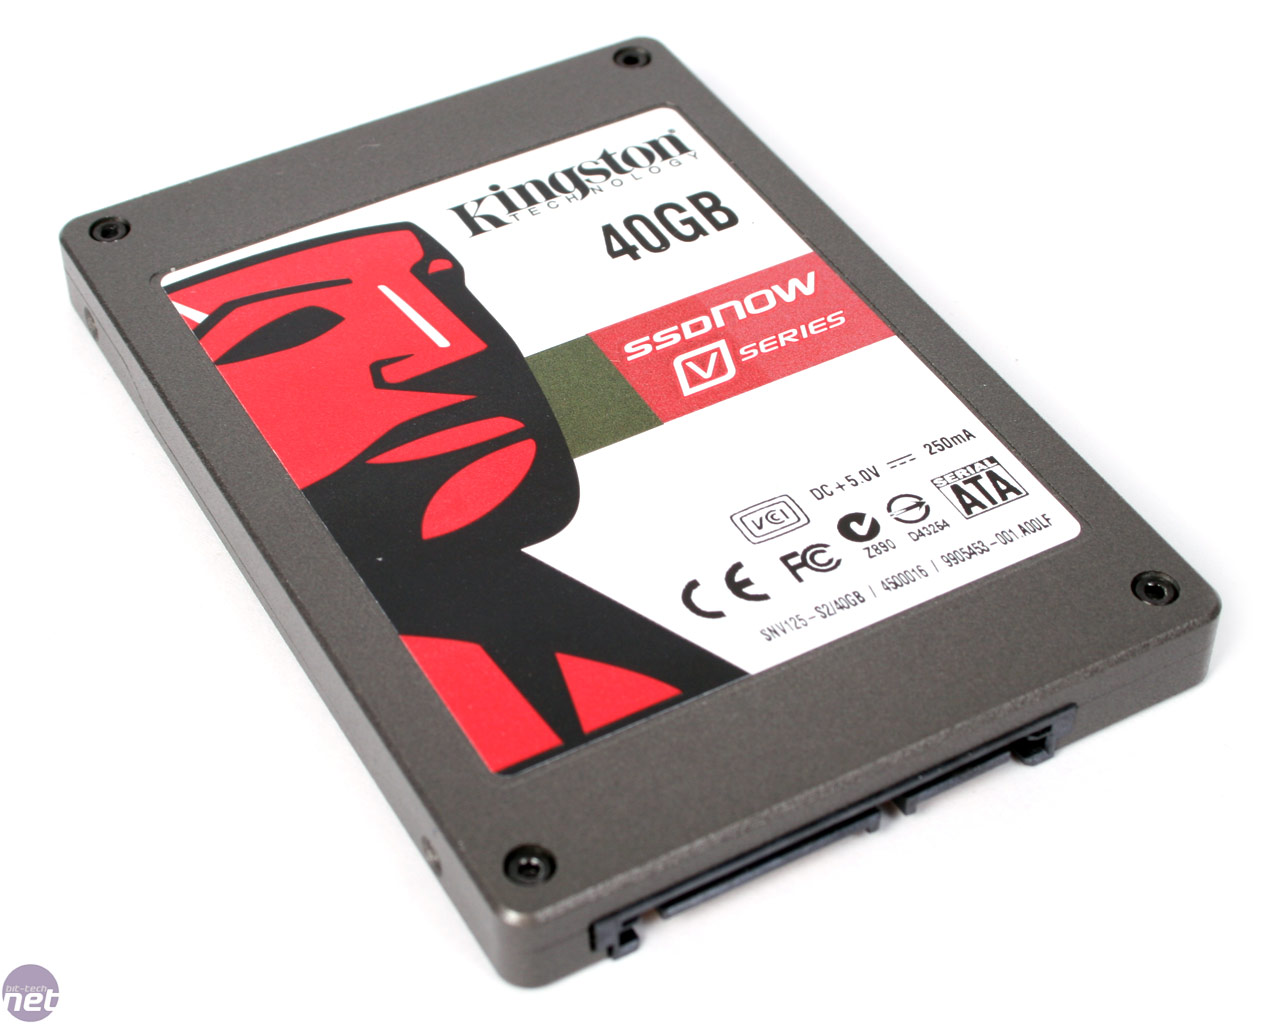 How to upgrade your harddrive with an SSD  KINGSTON SSD INSTALL KIT